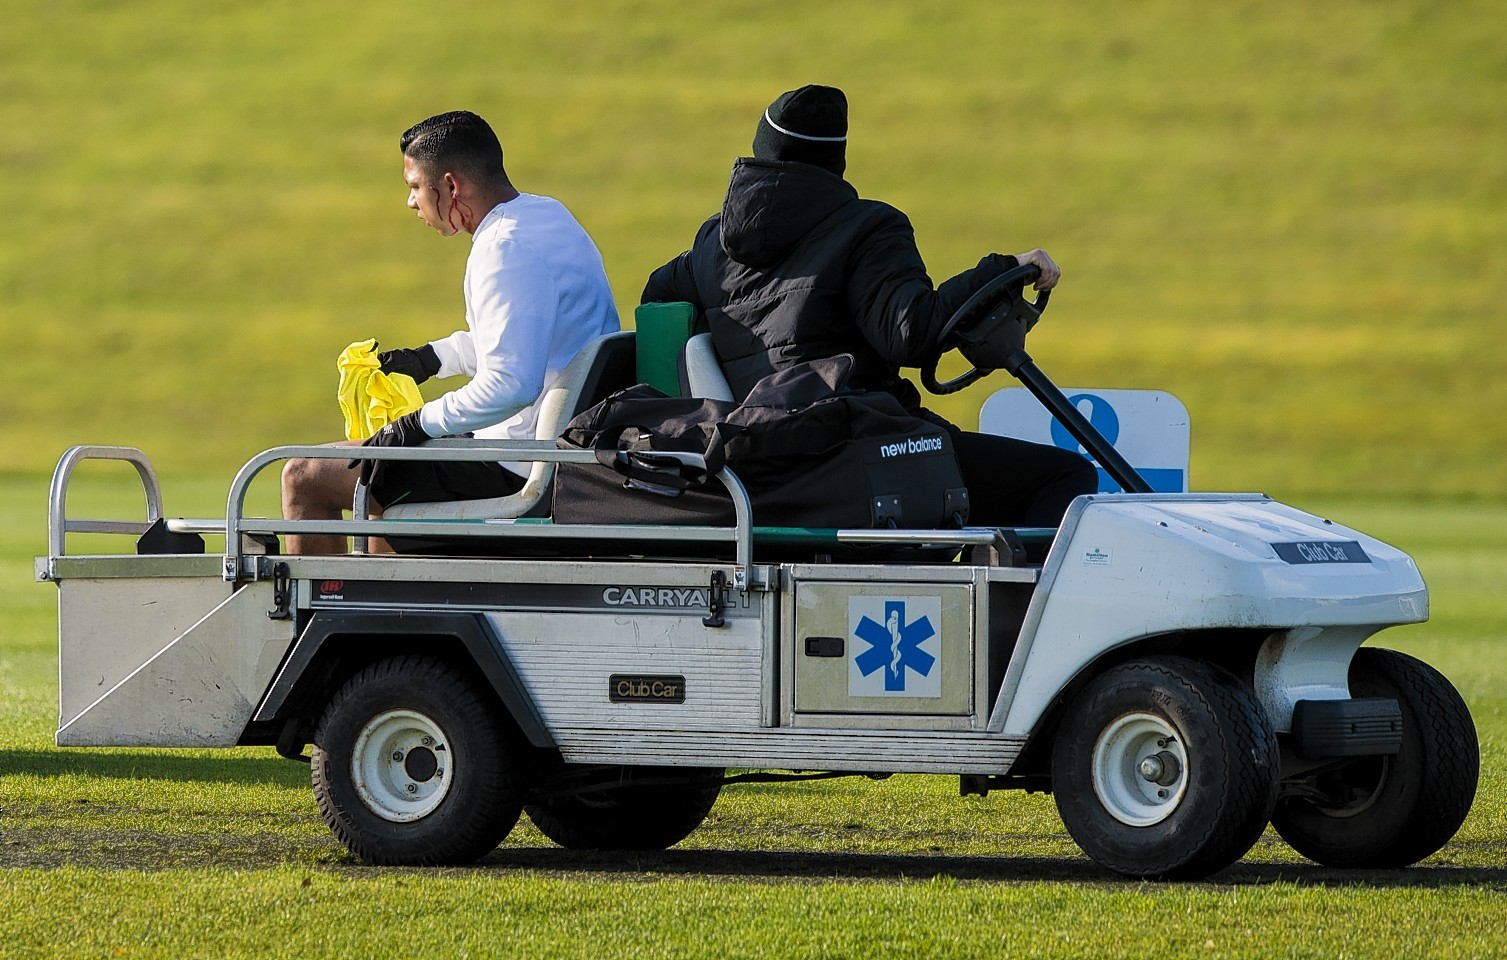 Celtic's Emilio Izaguirre is driven away from the training field after the incident with Nadir Ciftci